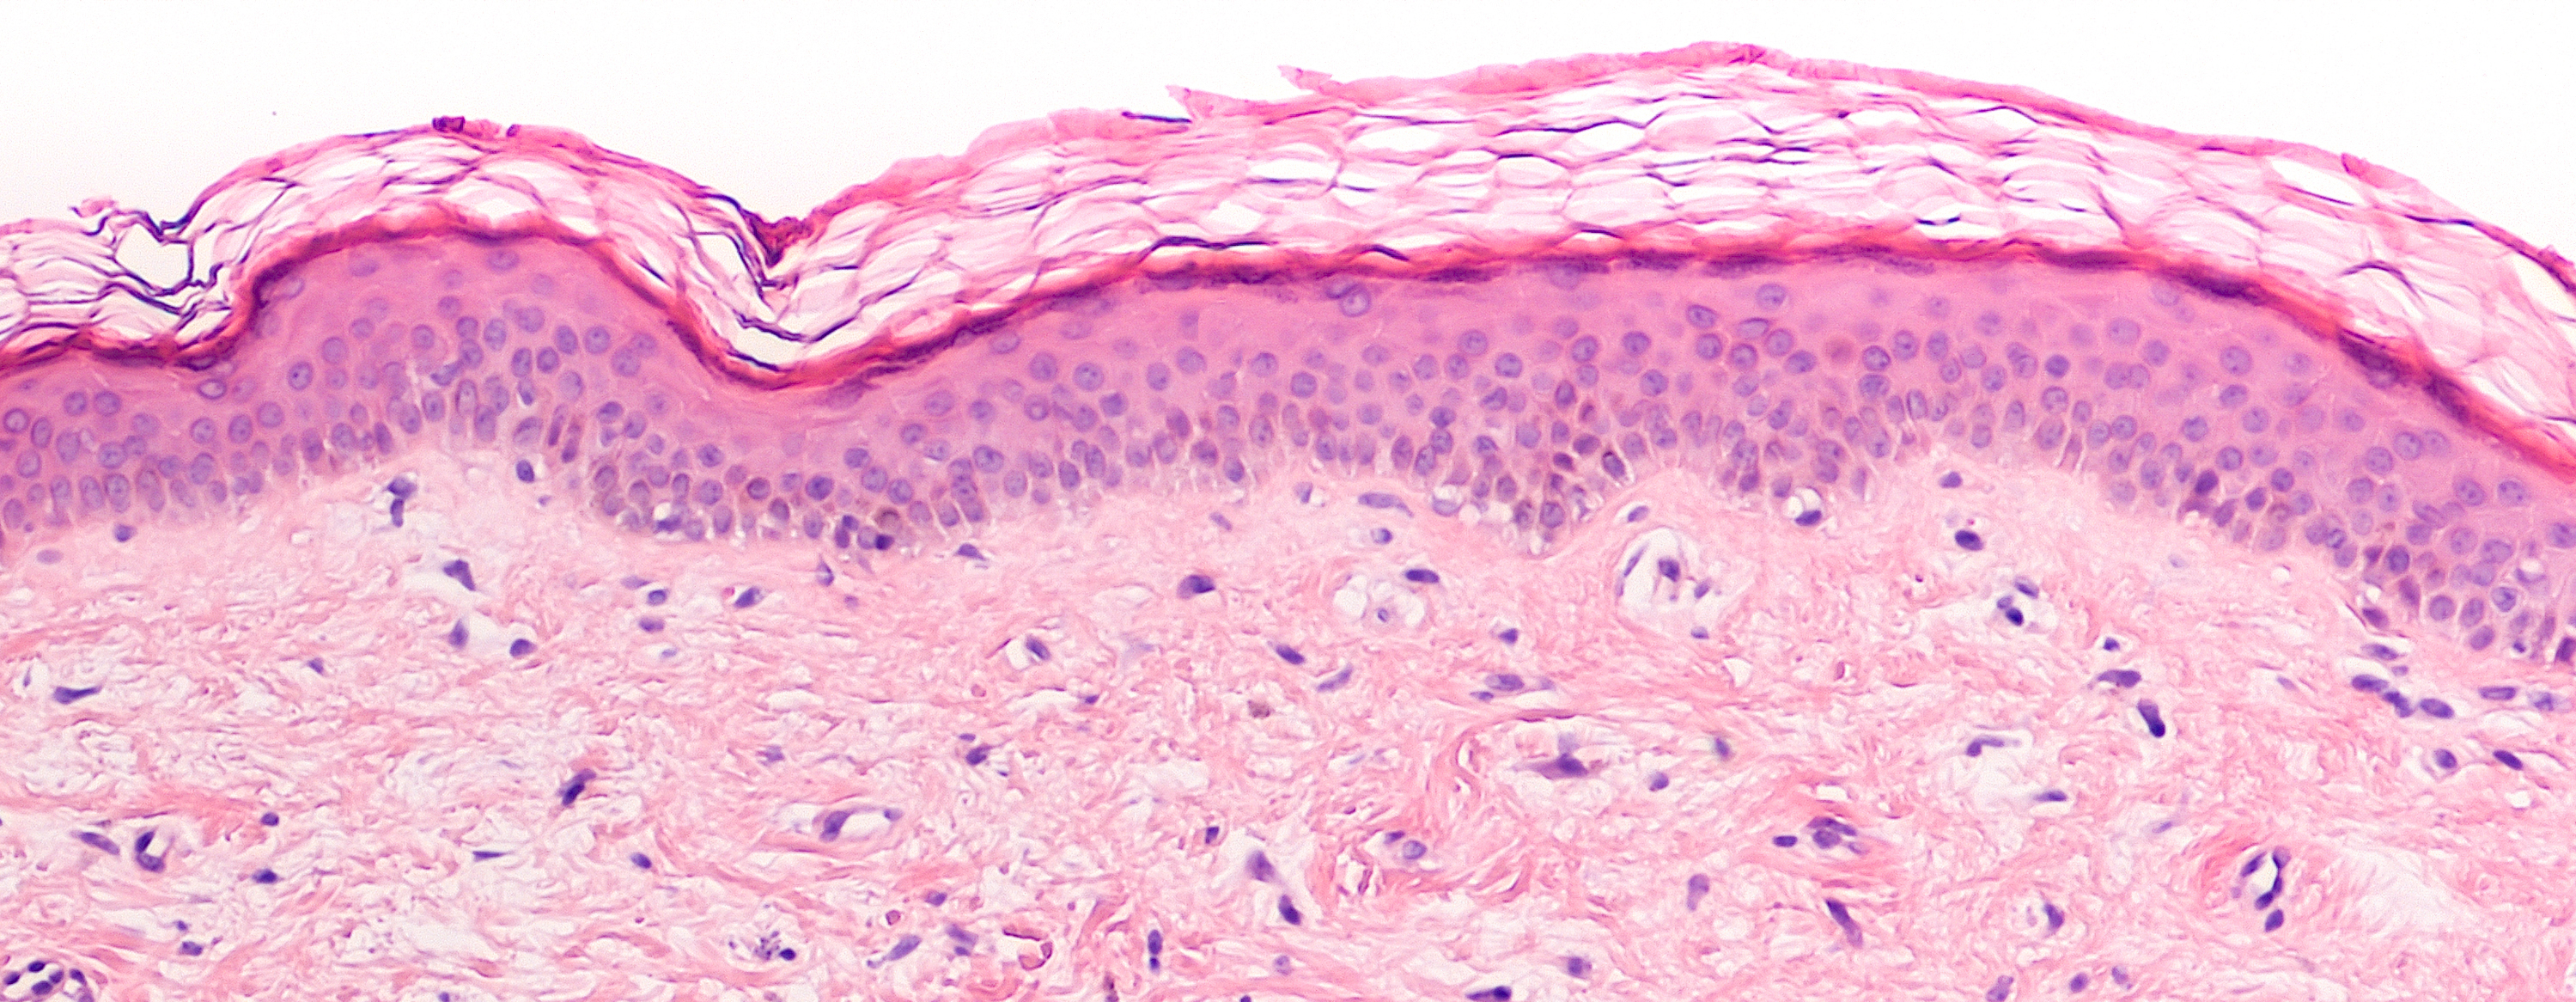 Breast tissue